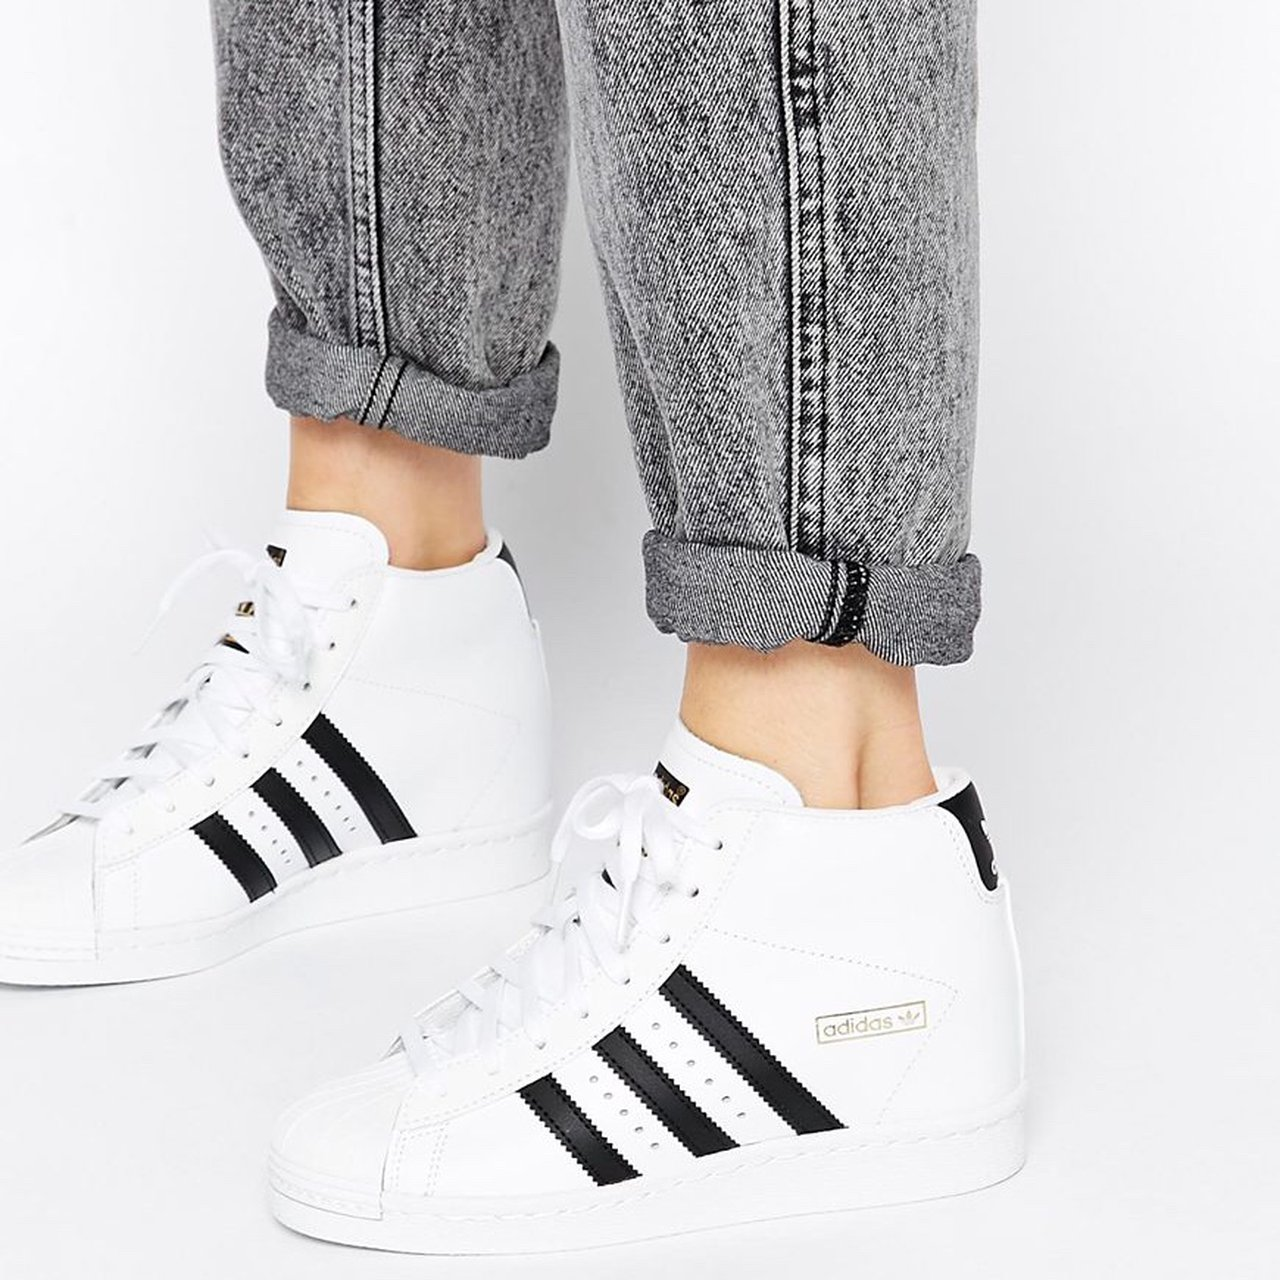 049260c5fb1 Adidas Superstar Up Wedge Sneakers Brand new Adidas Up with - Depop